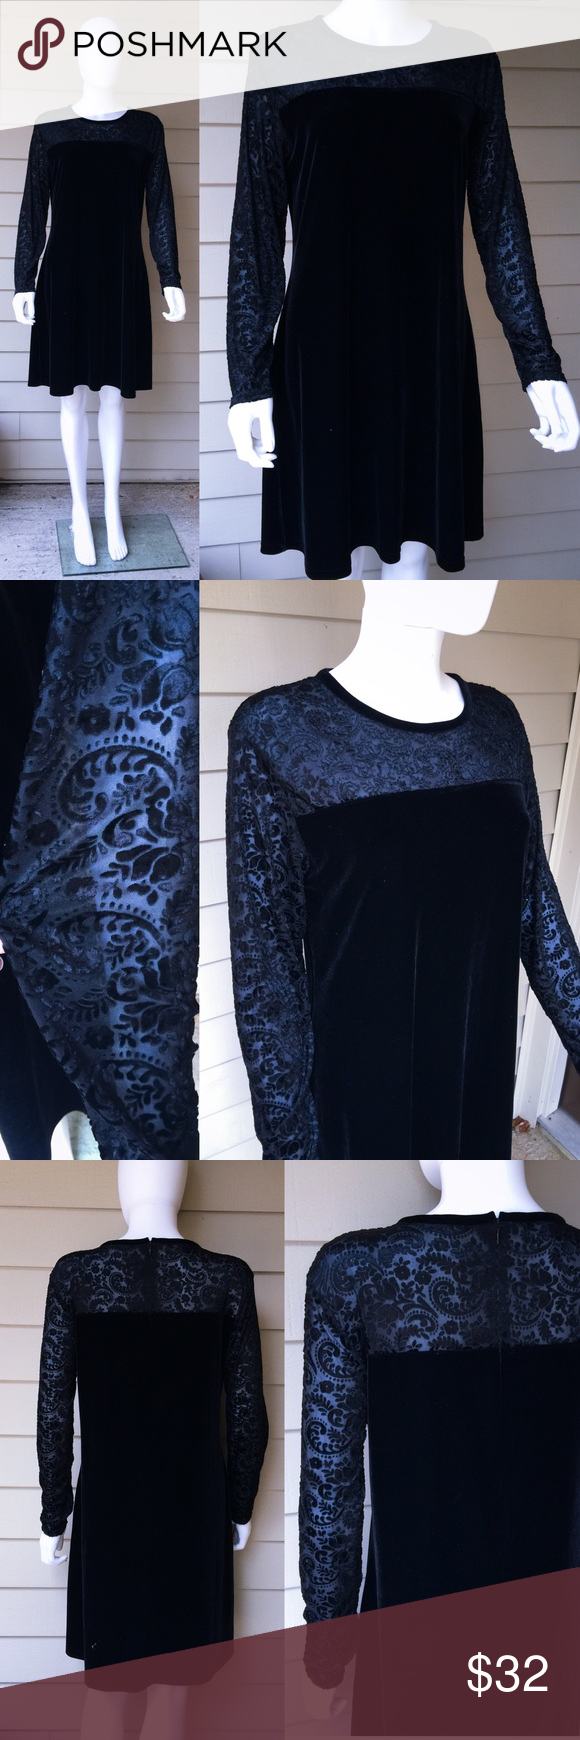 Vintage 90s black velvet babydoll mini dress Unique brocade shear panels on upper bust and sleeves. Black velvet mini mod dress. By jacqueline ferrar . In good condition . MEASUREMENTS(flat)- size 12 . Stretchy-Bust: 19' Waist: 17' Hips: 23' . Vintage 90s. Sold as is. Ask all questions before purchasing. Vintage Dresses Mini